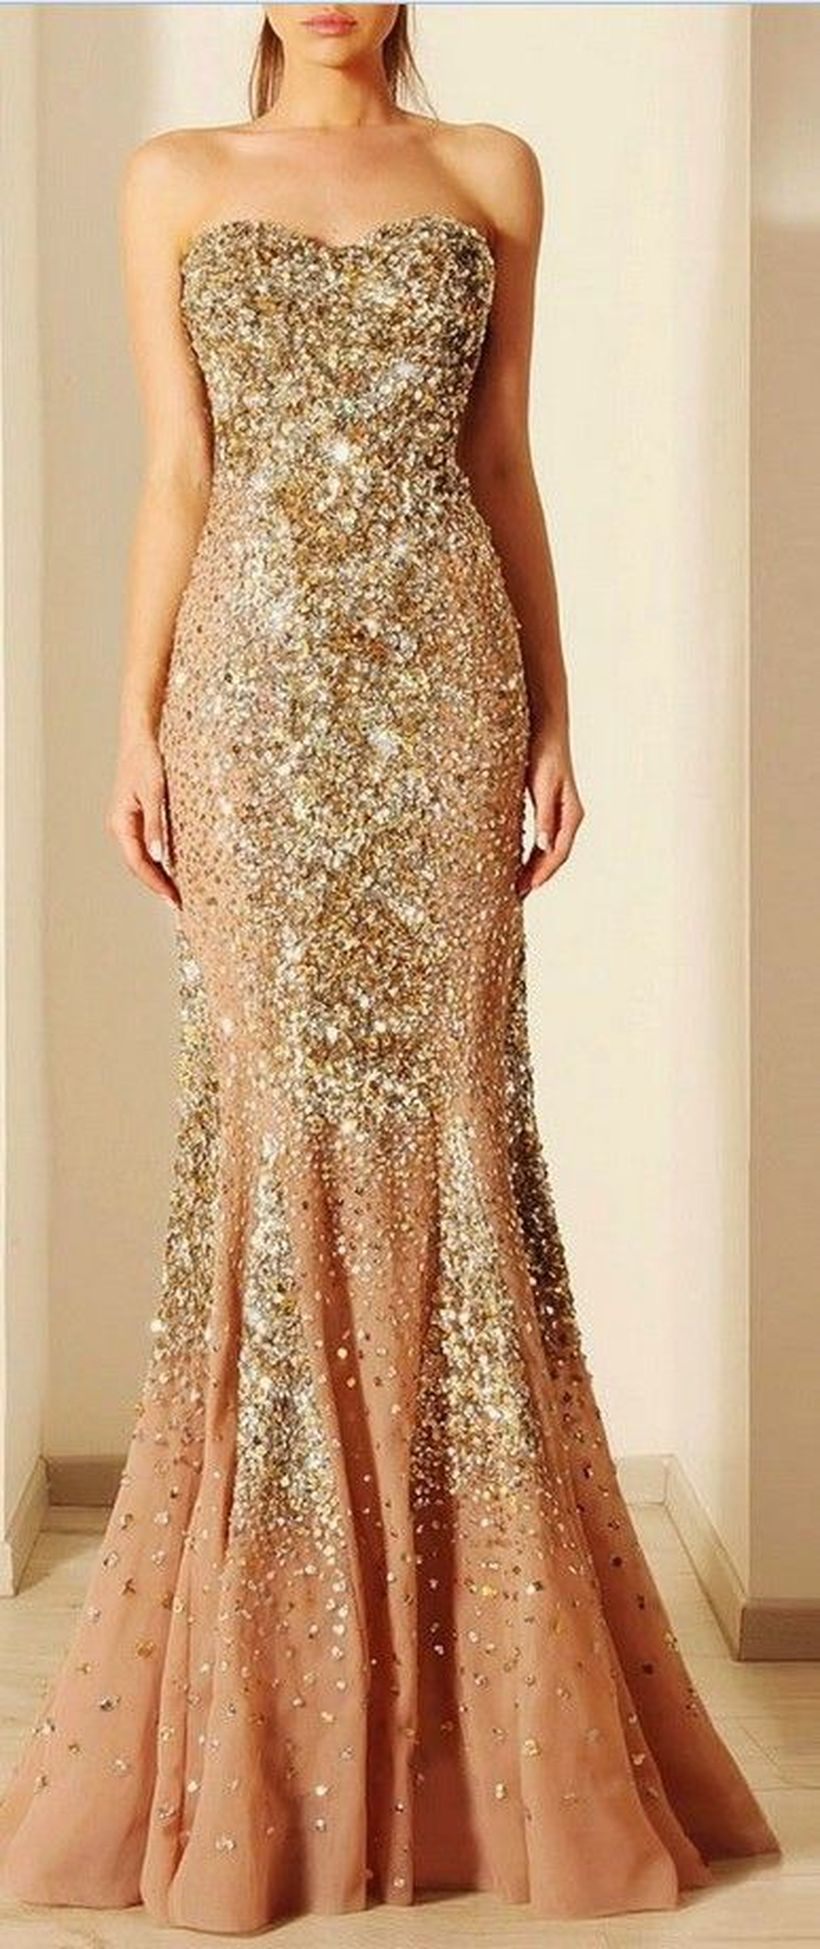 Gorgeous prom dresses for teens ideas 2017 29